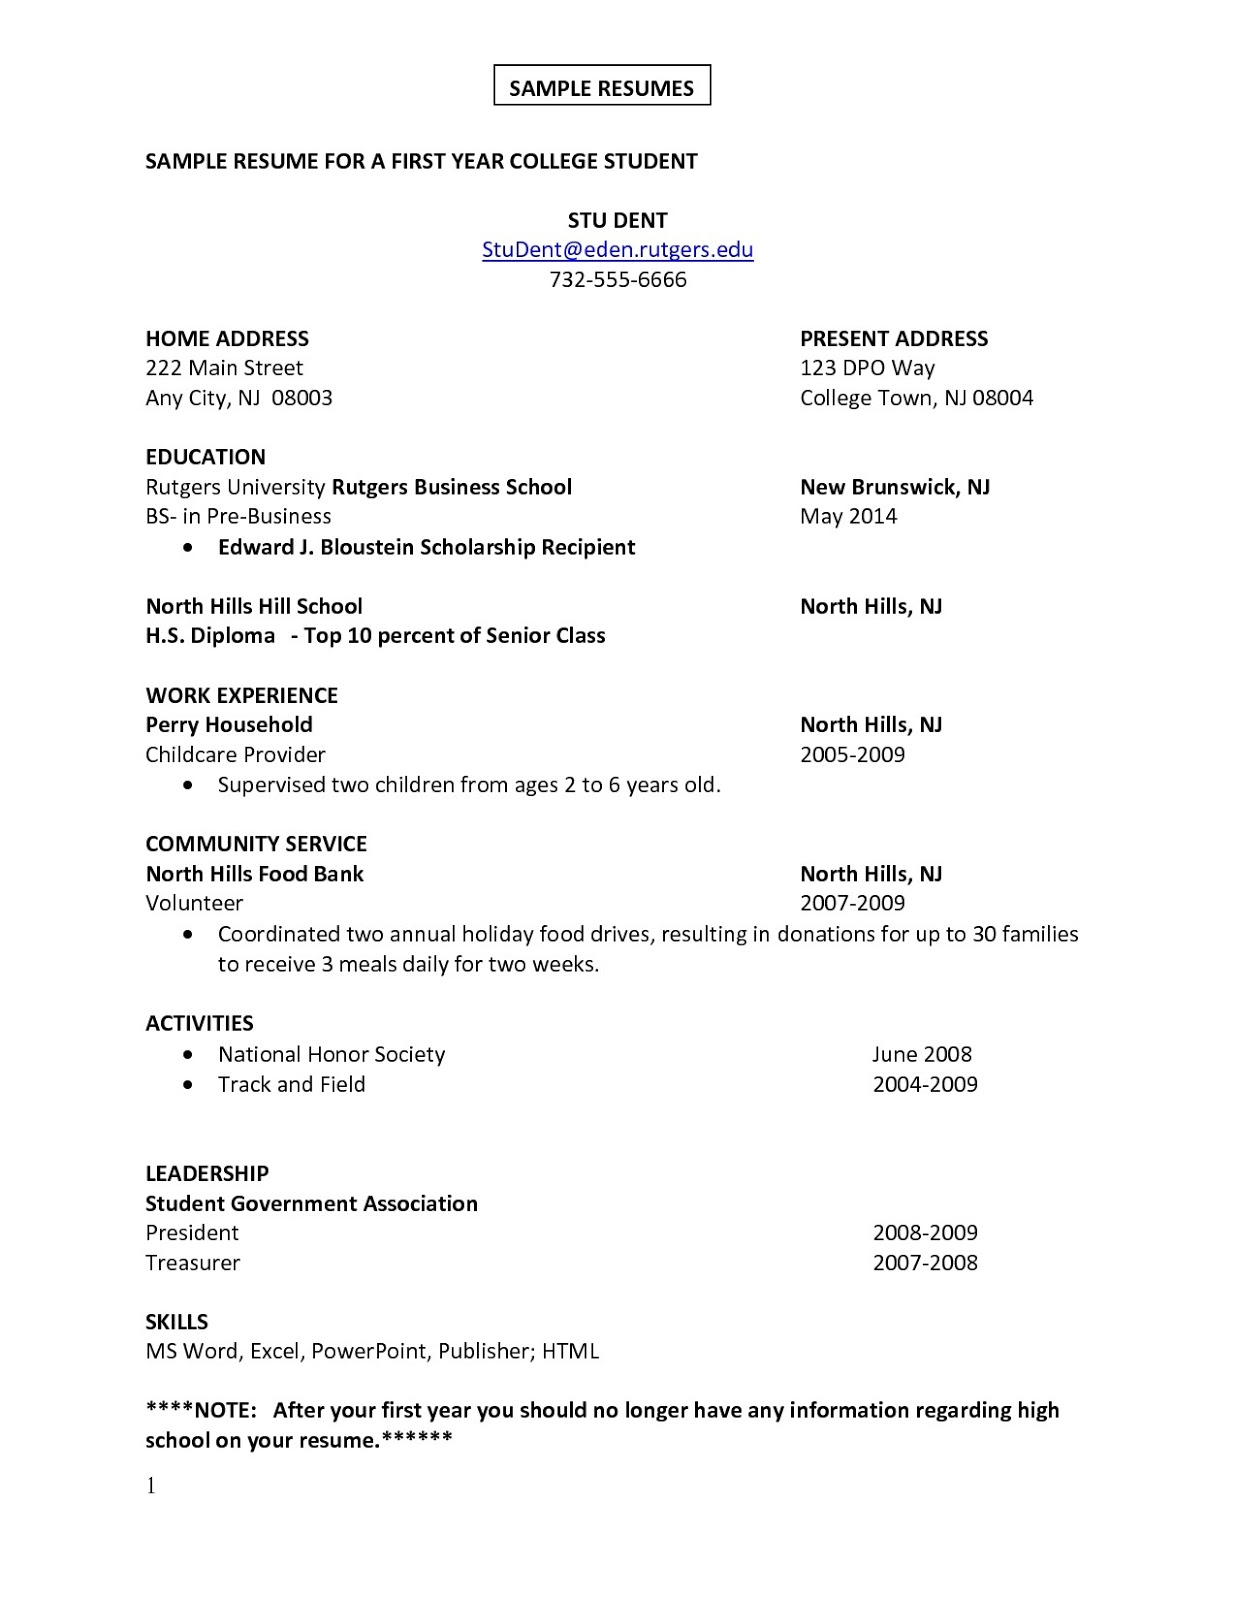 how to write a resume for first job sample resume for first job no